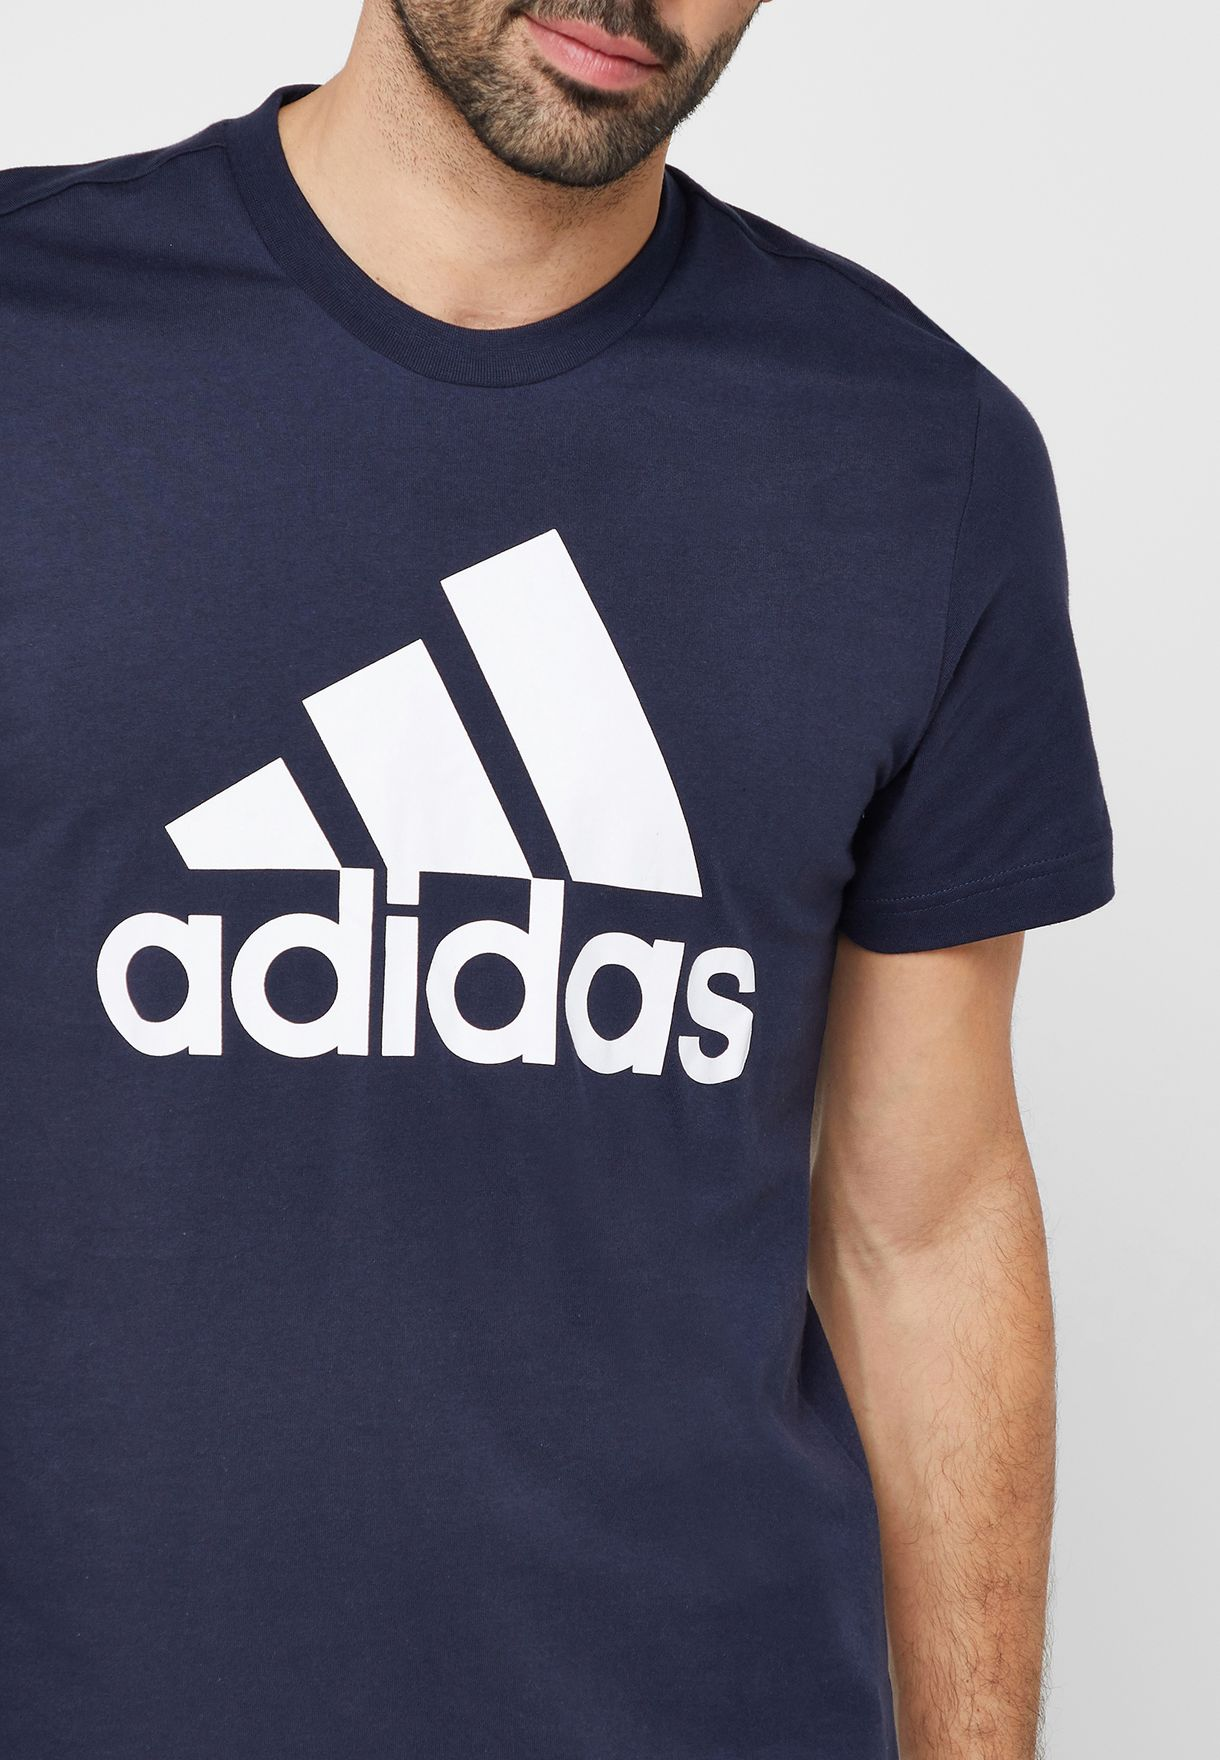 Must Have T-Shirt